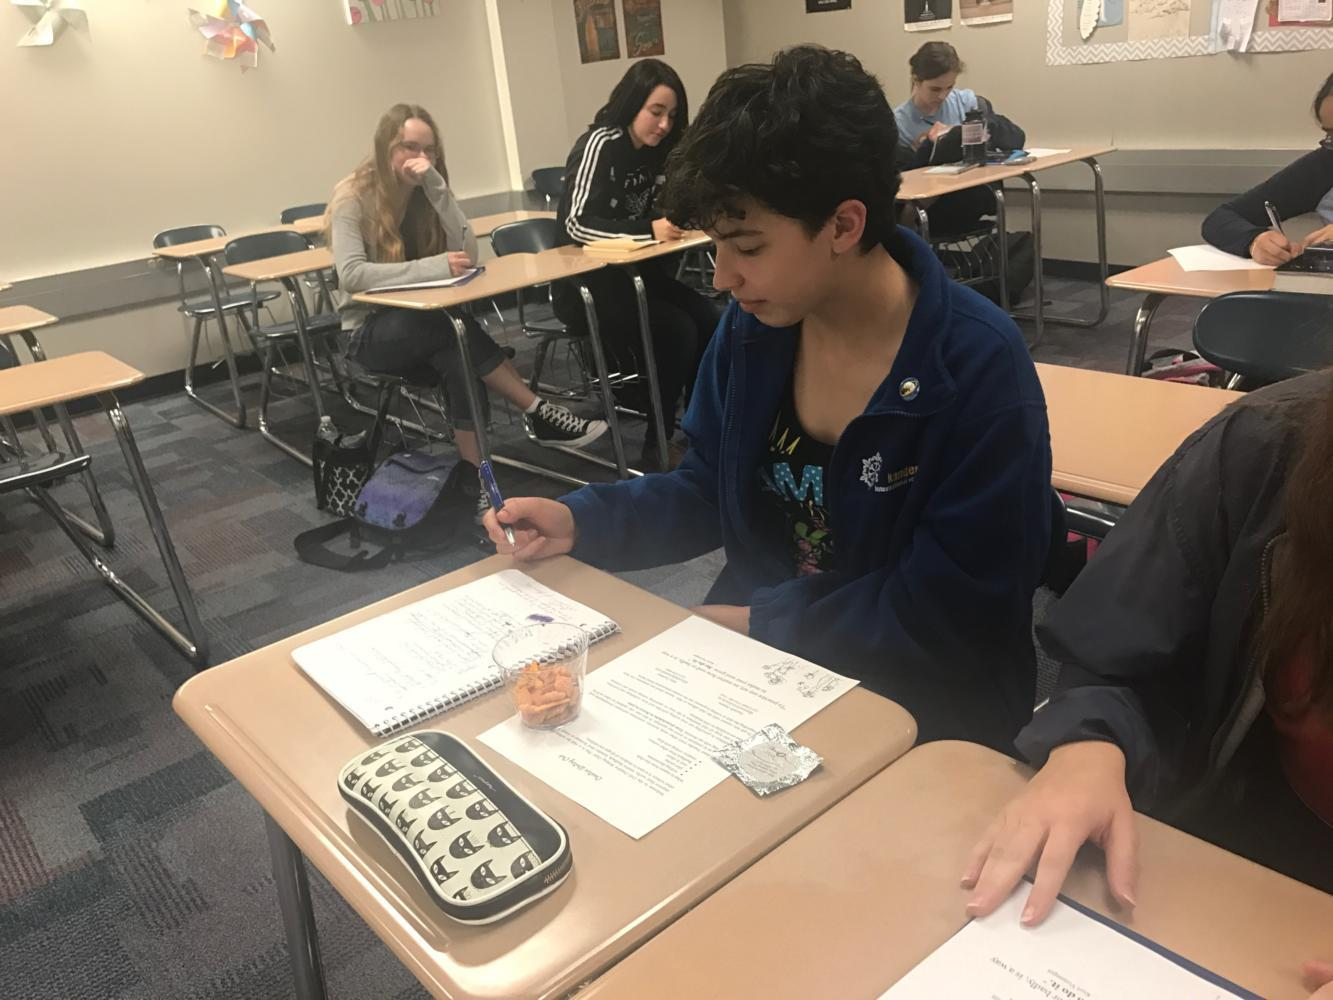 Creative Writing Club member Mackenzie Gonzales begins writing her warm up writing piece of the day. While doing so, she enjoys one of her favorite writing snacks: goldfish.